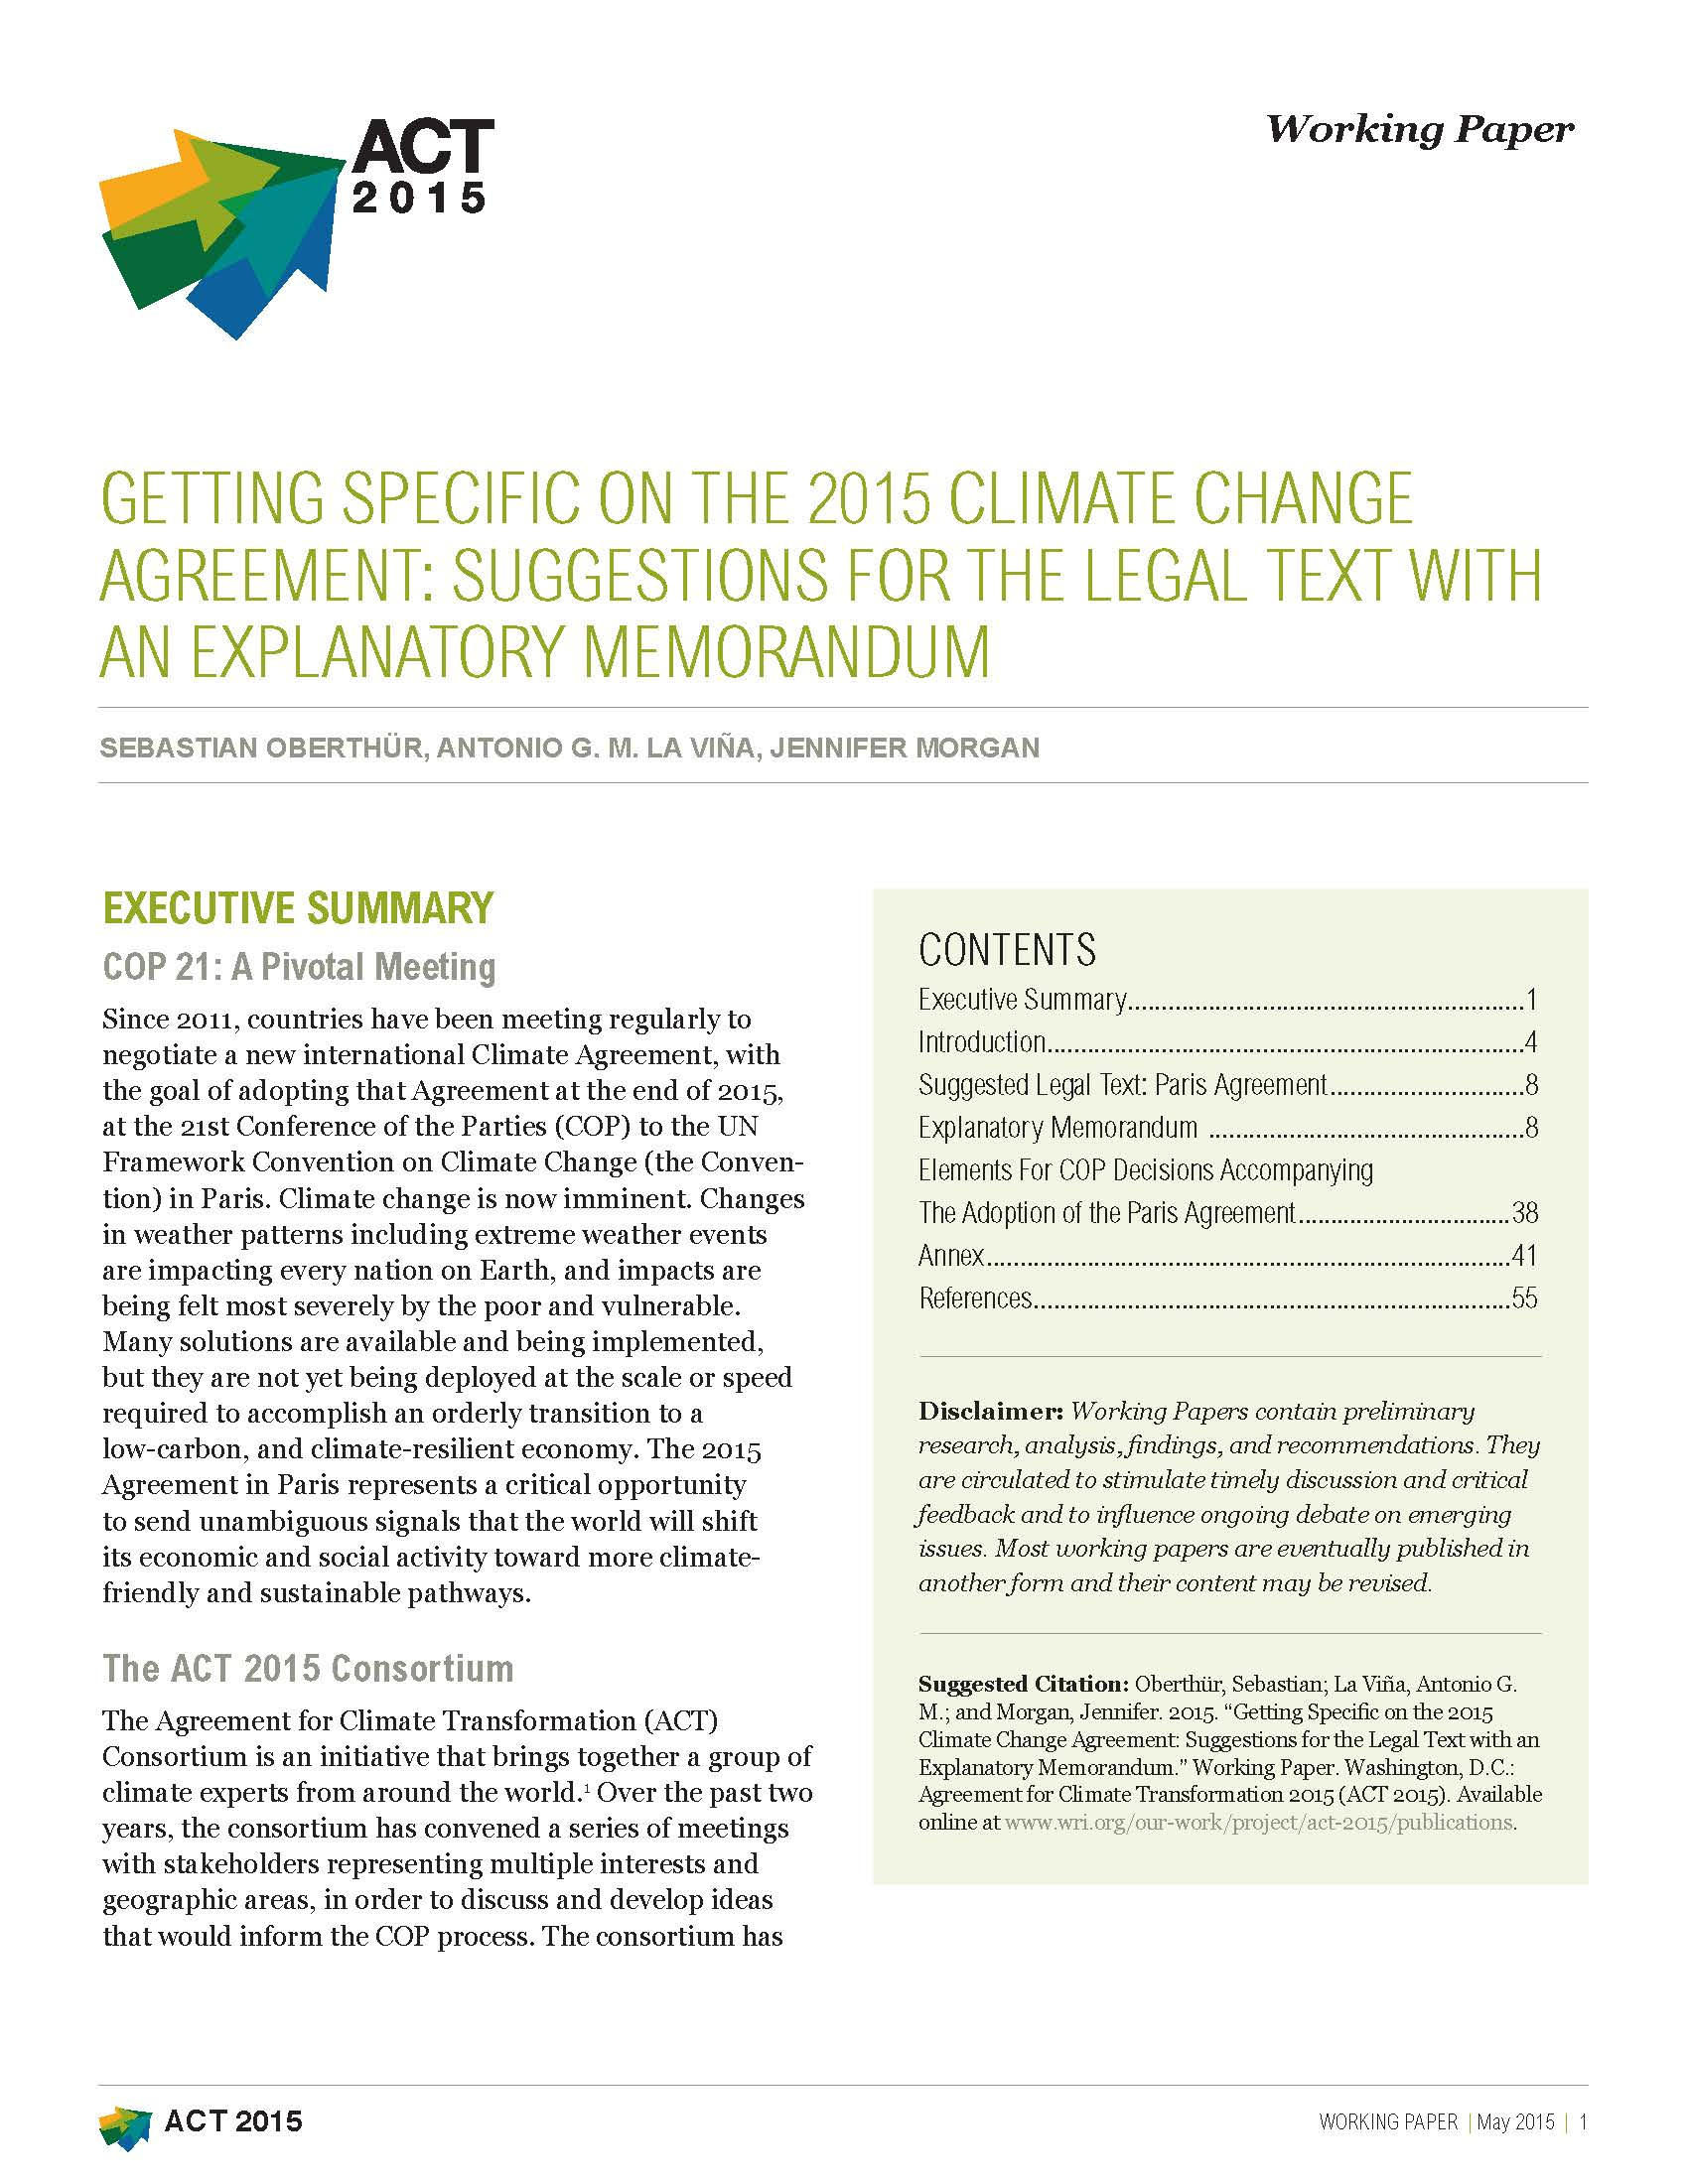 Getting Specific On The 2015 Climate Change Agreement World